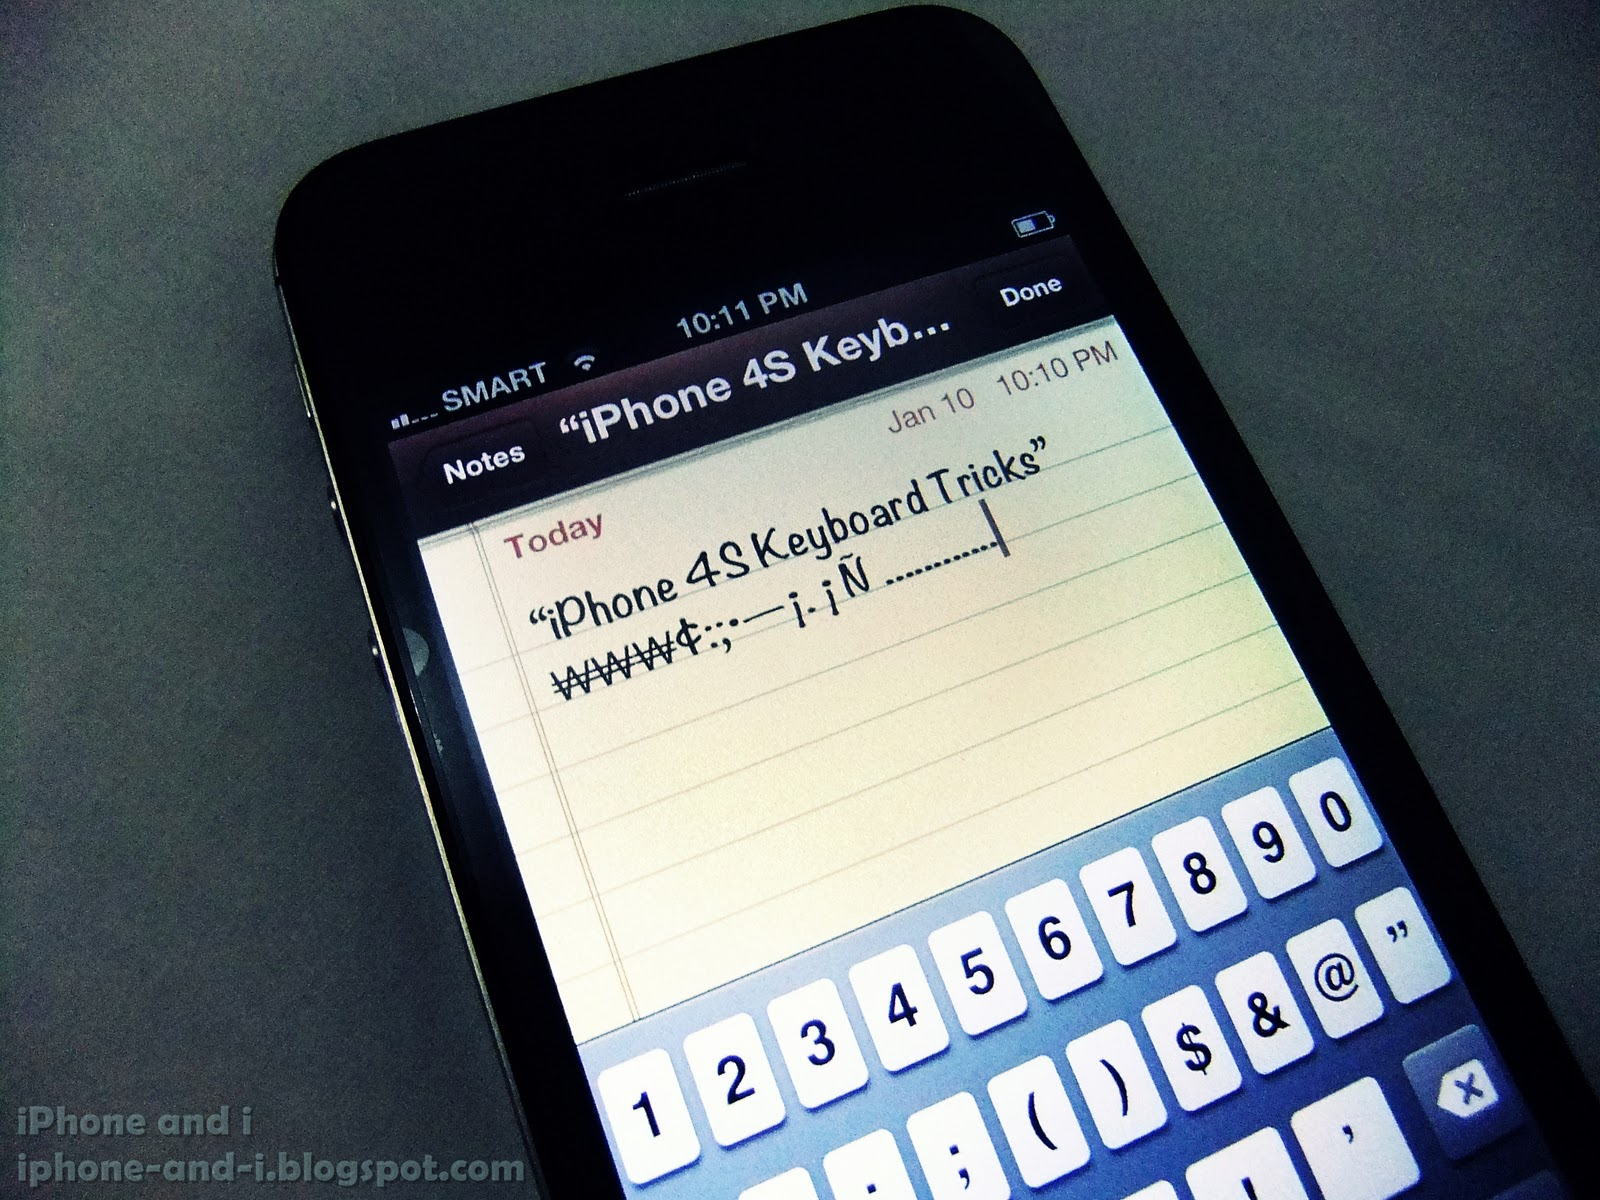 Iphone 4s keyboard tricks iphone tips and tricks some hidden symbols in the iphone 4s virtual keyboard biocorpaavc Choice Image